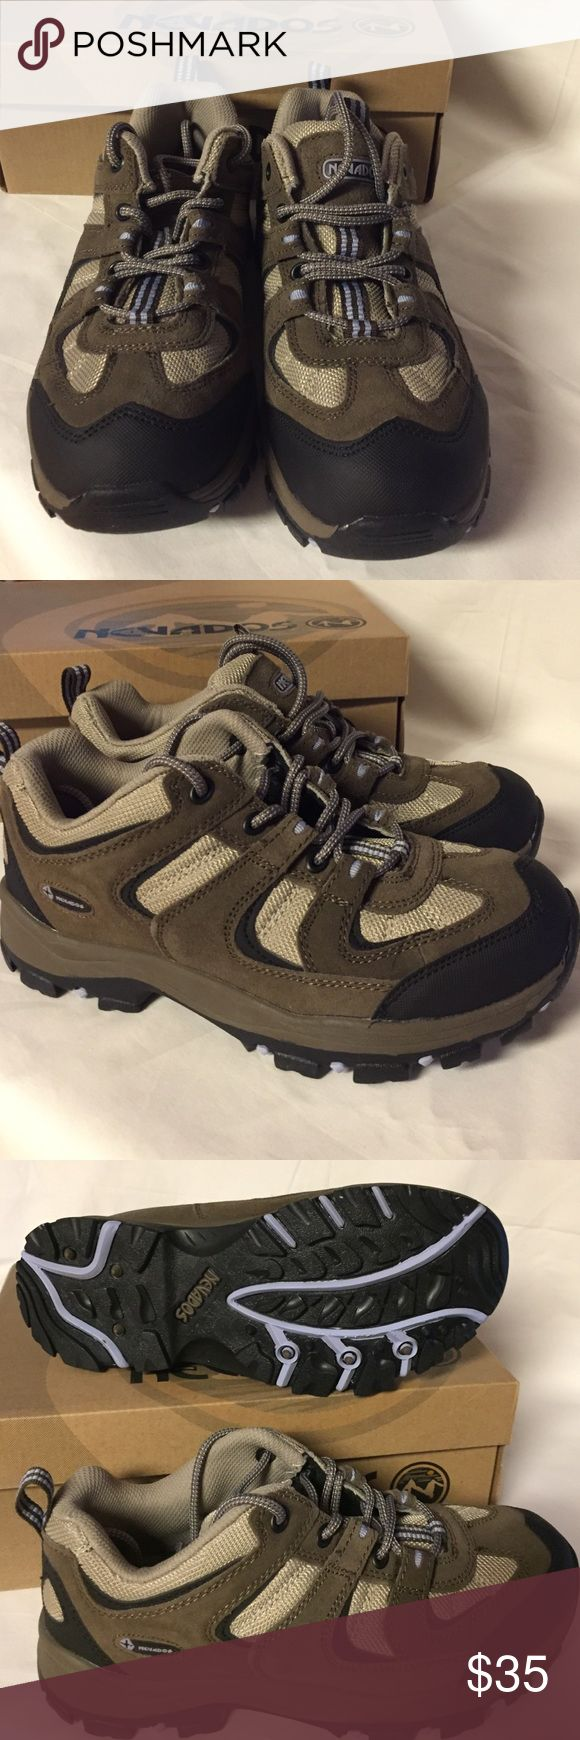 Navados women's hiking shoes. Hiking shoes. New in box Nevados Shoes Athletic Shoes